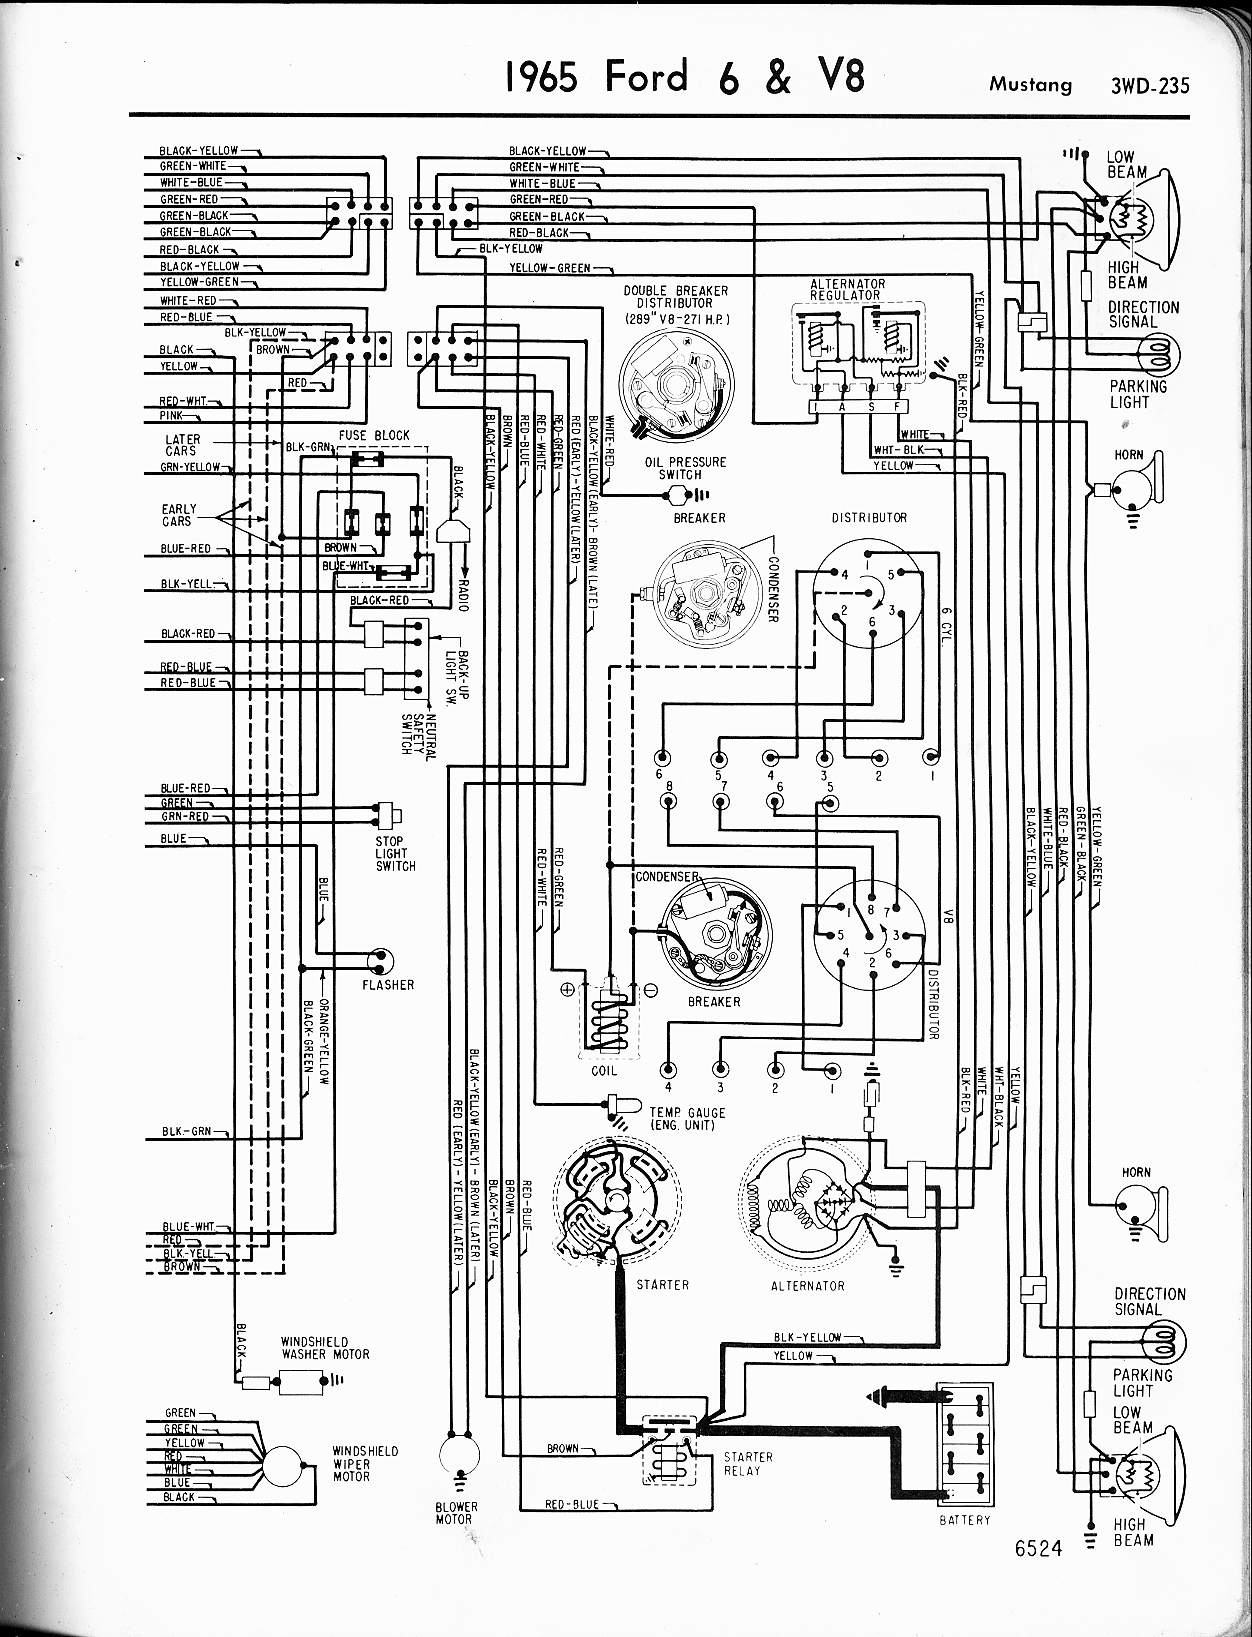 Ford Diagrams 97 F 350 Wiring Diagram Get Free Image About 65 Mustang 2 Drawing B